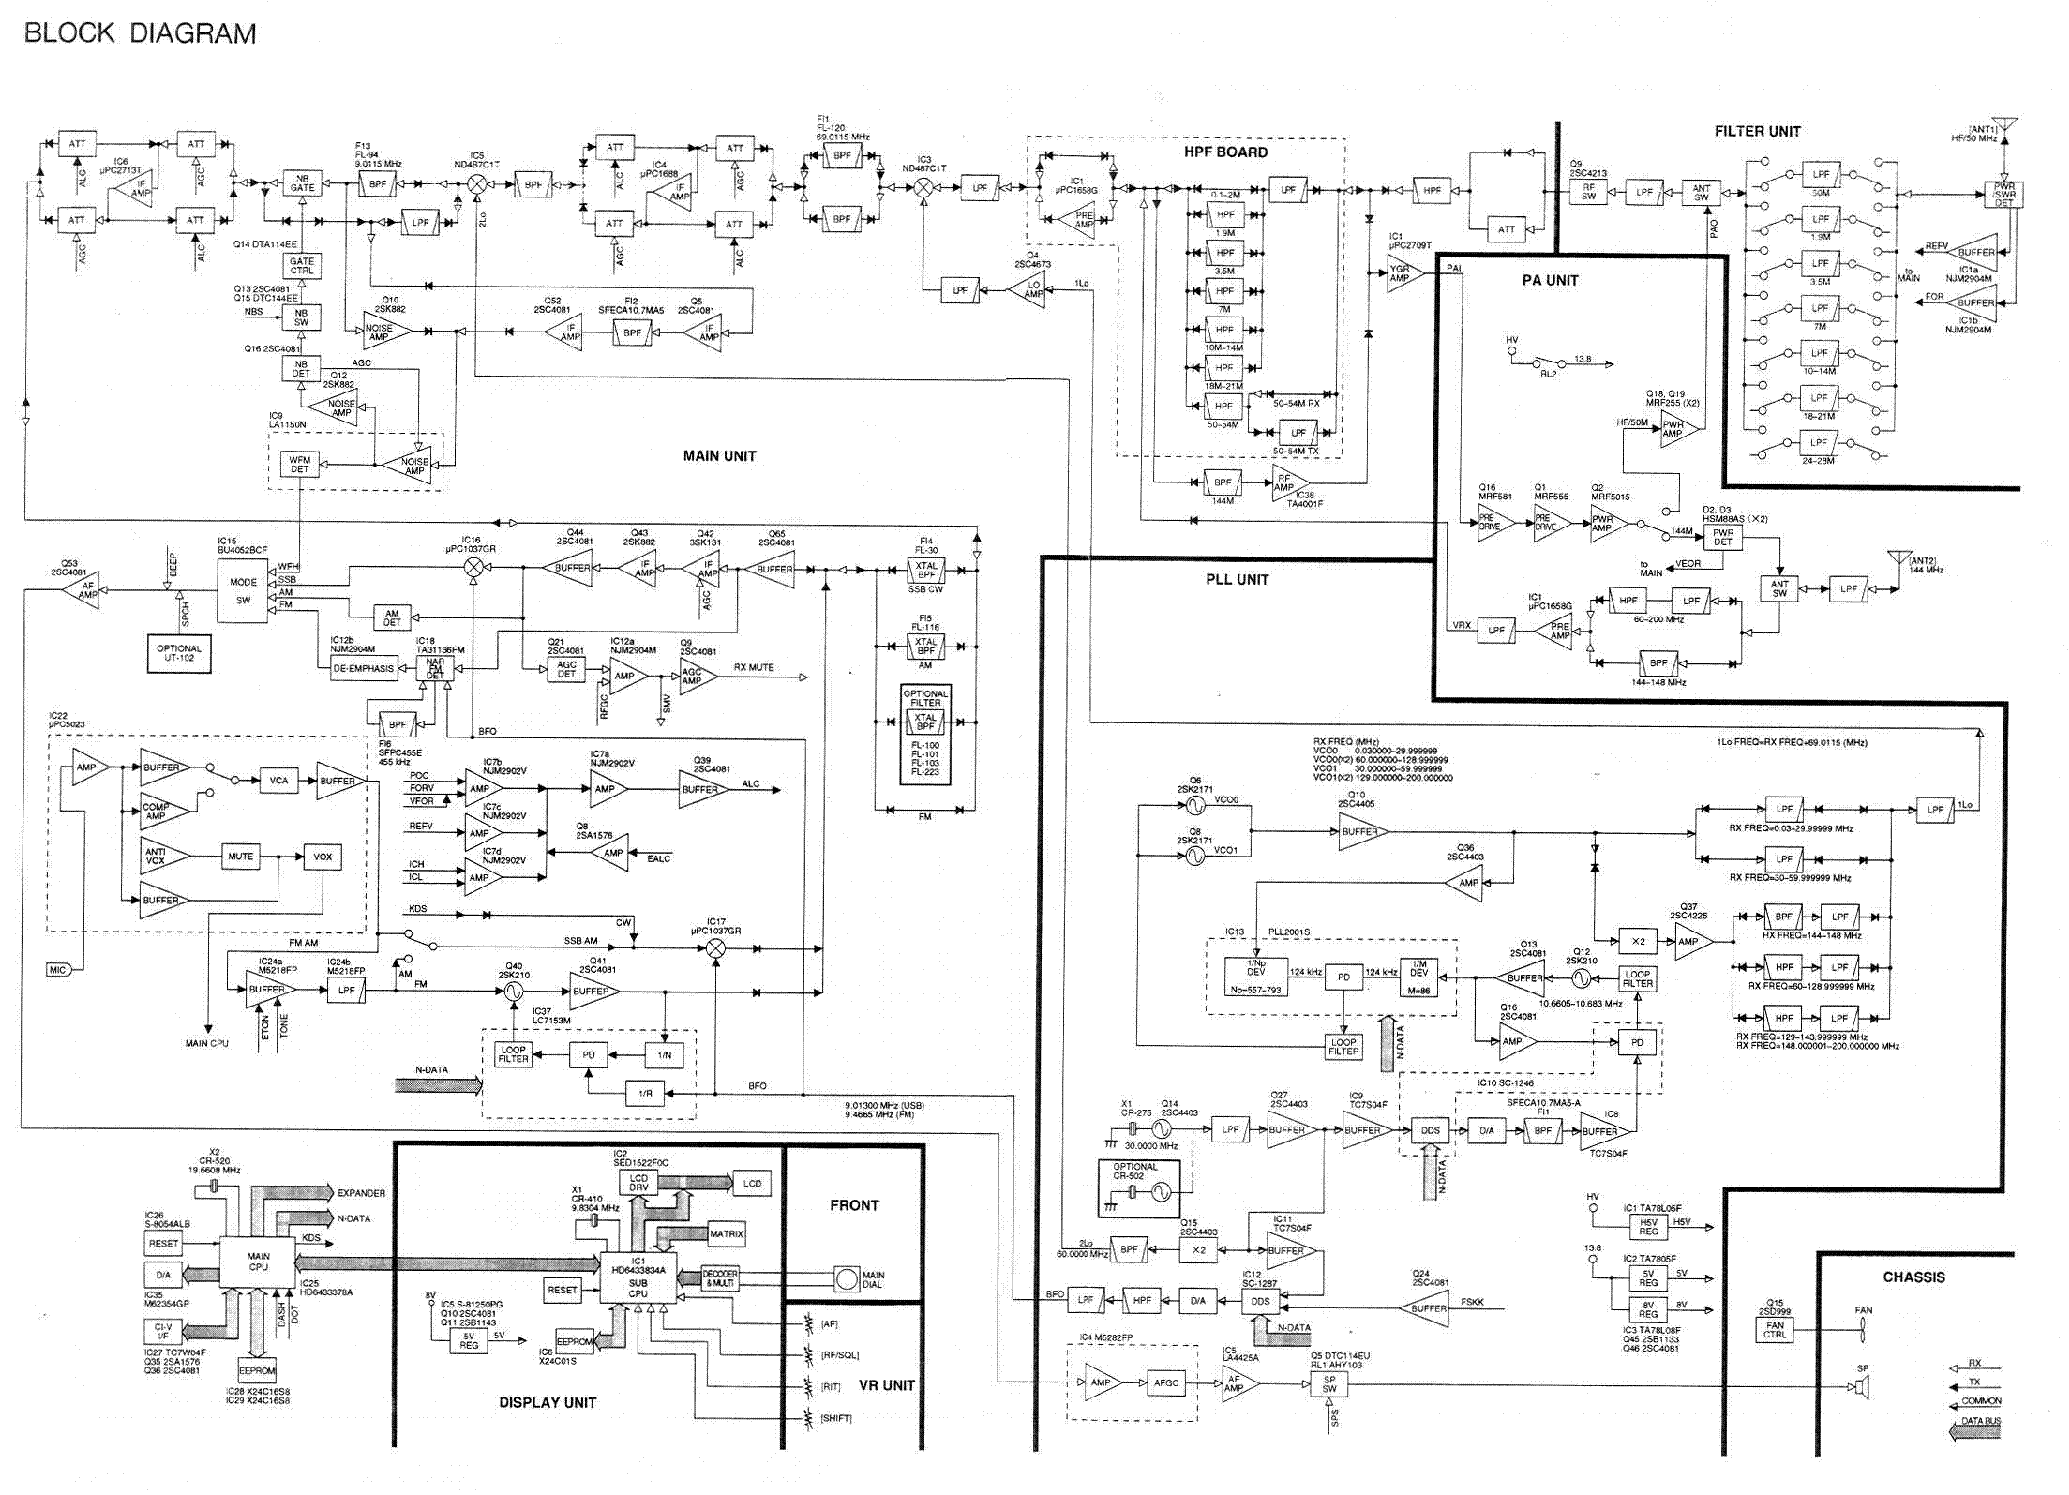 ICOM IC-706 SCHEMATIC service manual (1st page)